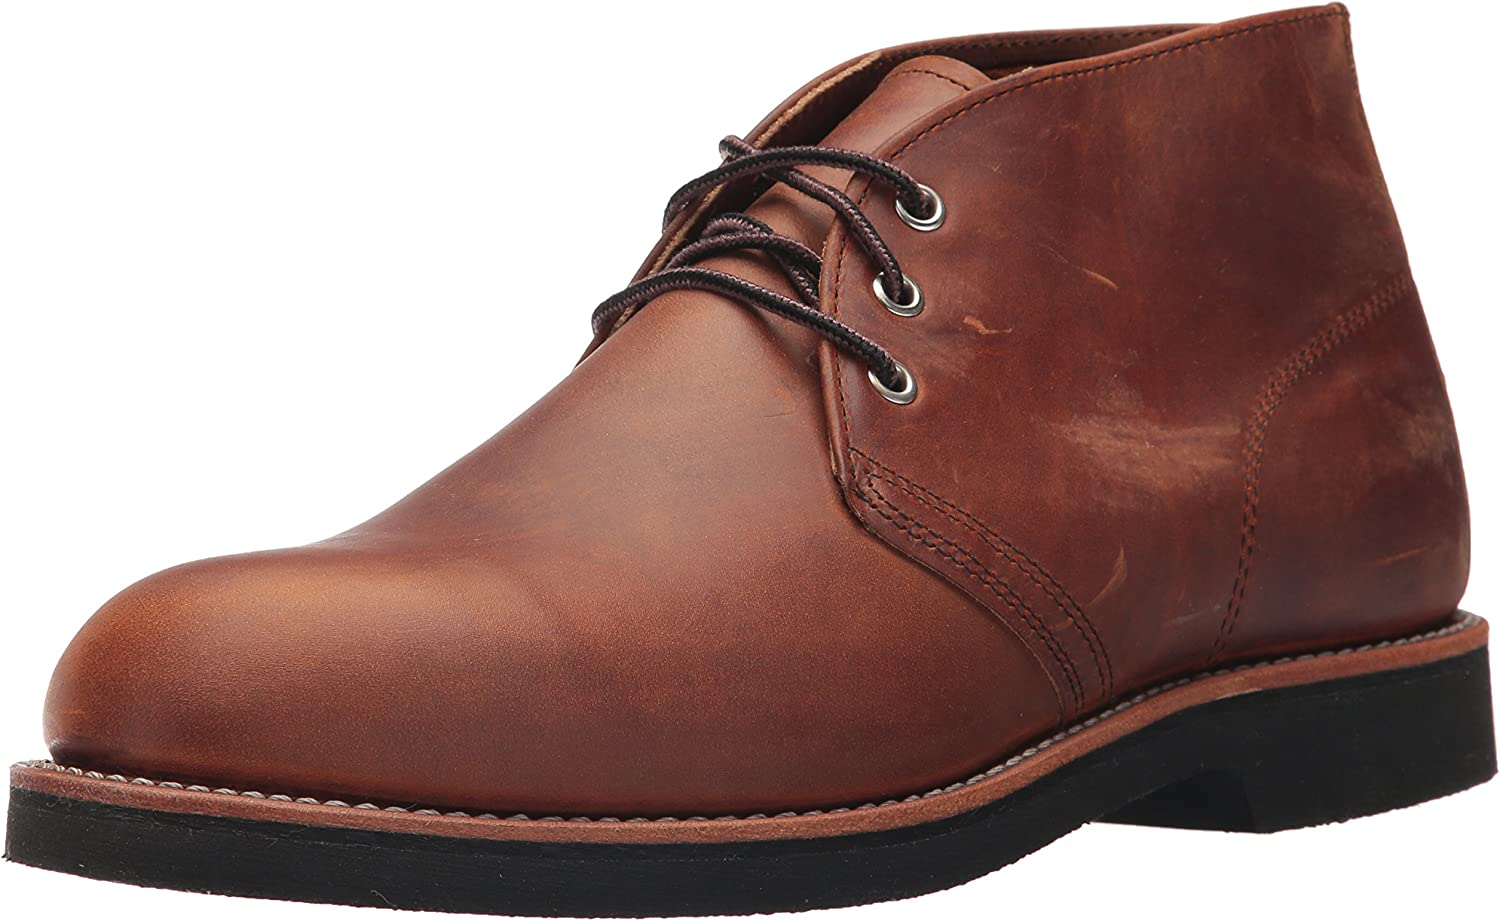 Red Wing Men's Foreman Chukka Work Boot